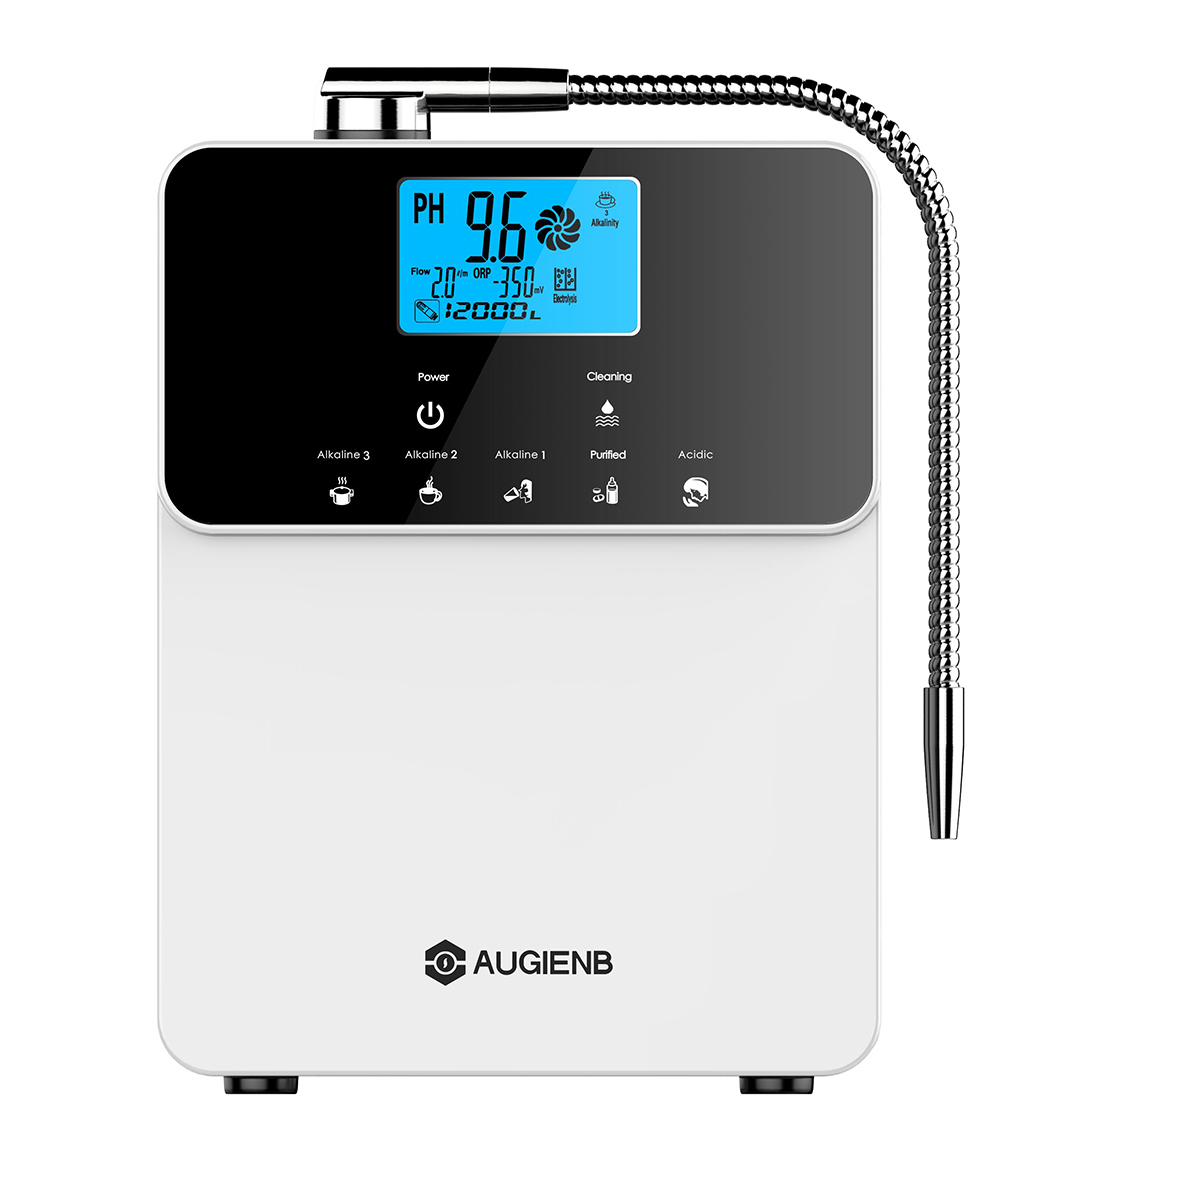 Augienb 12000 Liters Water Ionizer Purifier Machine PH3.5-11 Alkaline Acid 5 Water Settings Auto-Cleaning LCD Touch Water Filter